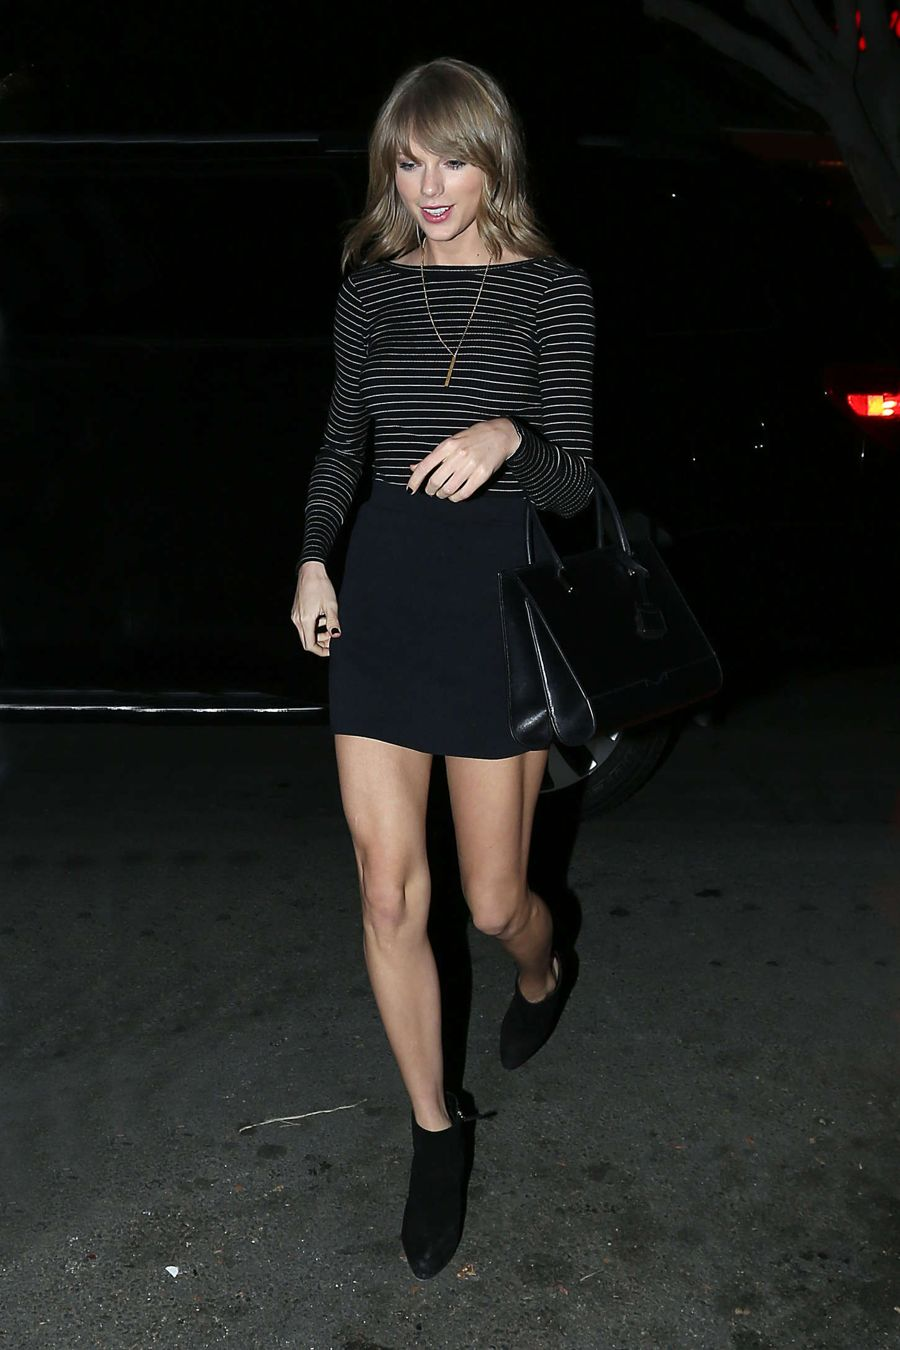 Taylor Swift Goes on Night of Adventures in Hollywood